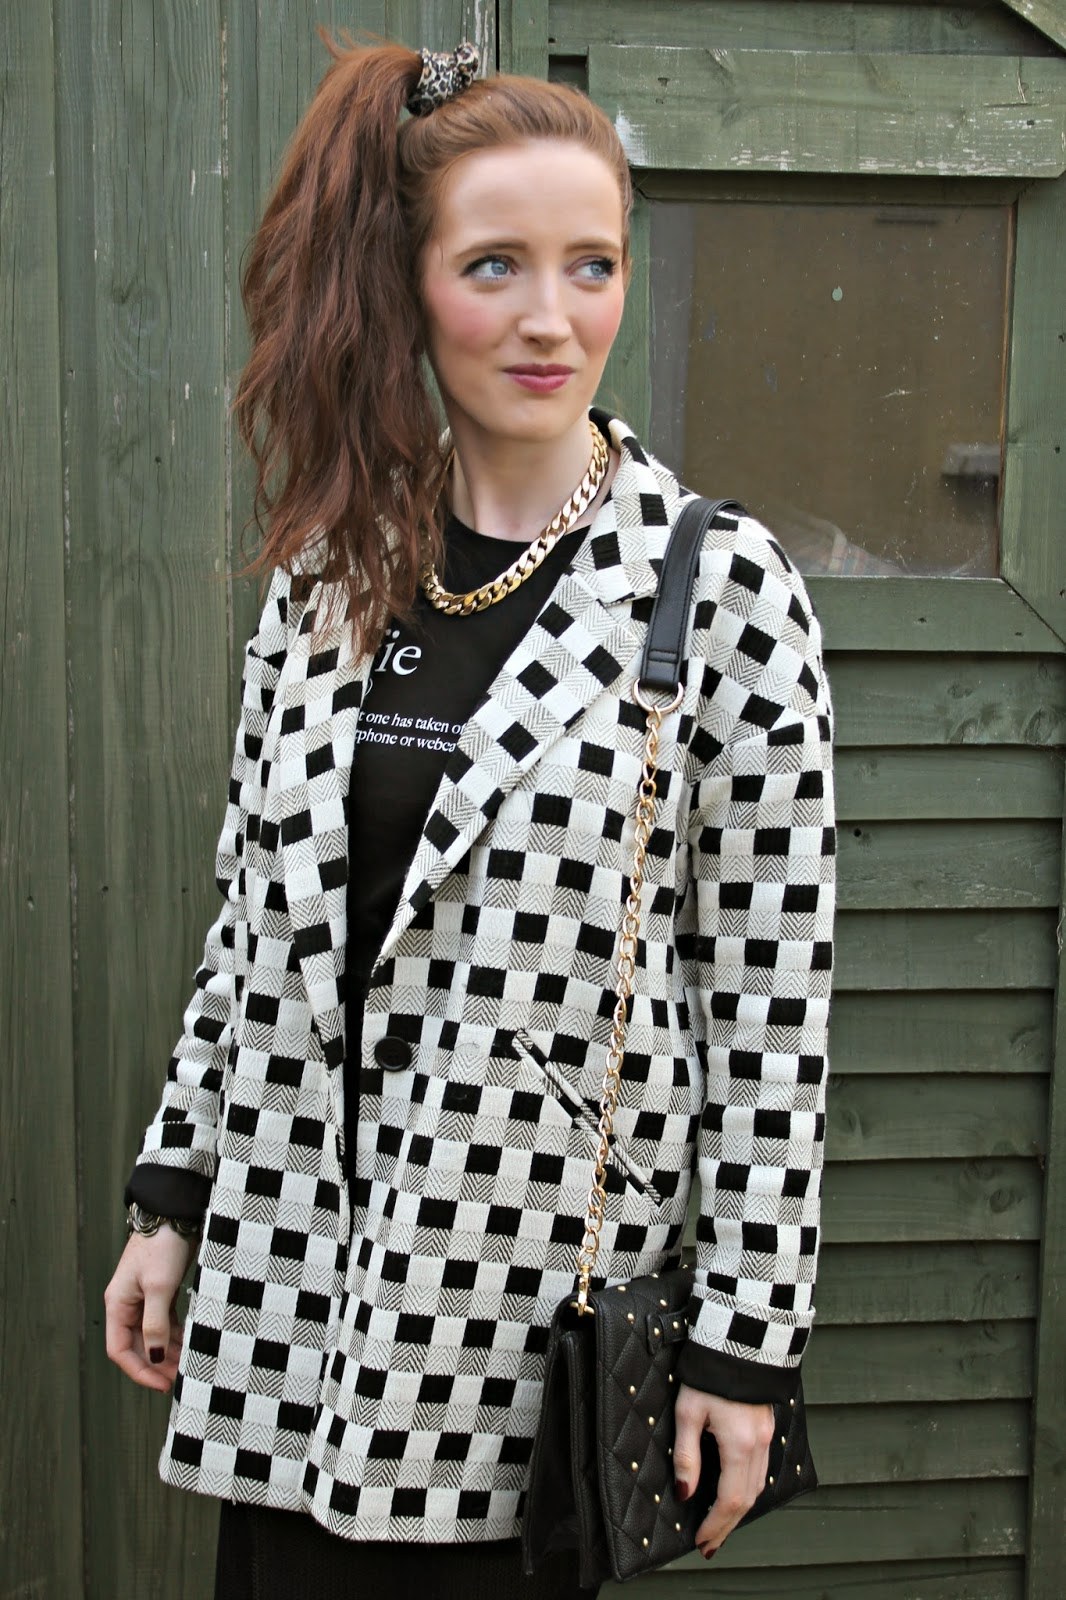 Bec Boop fashion blogger Galway